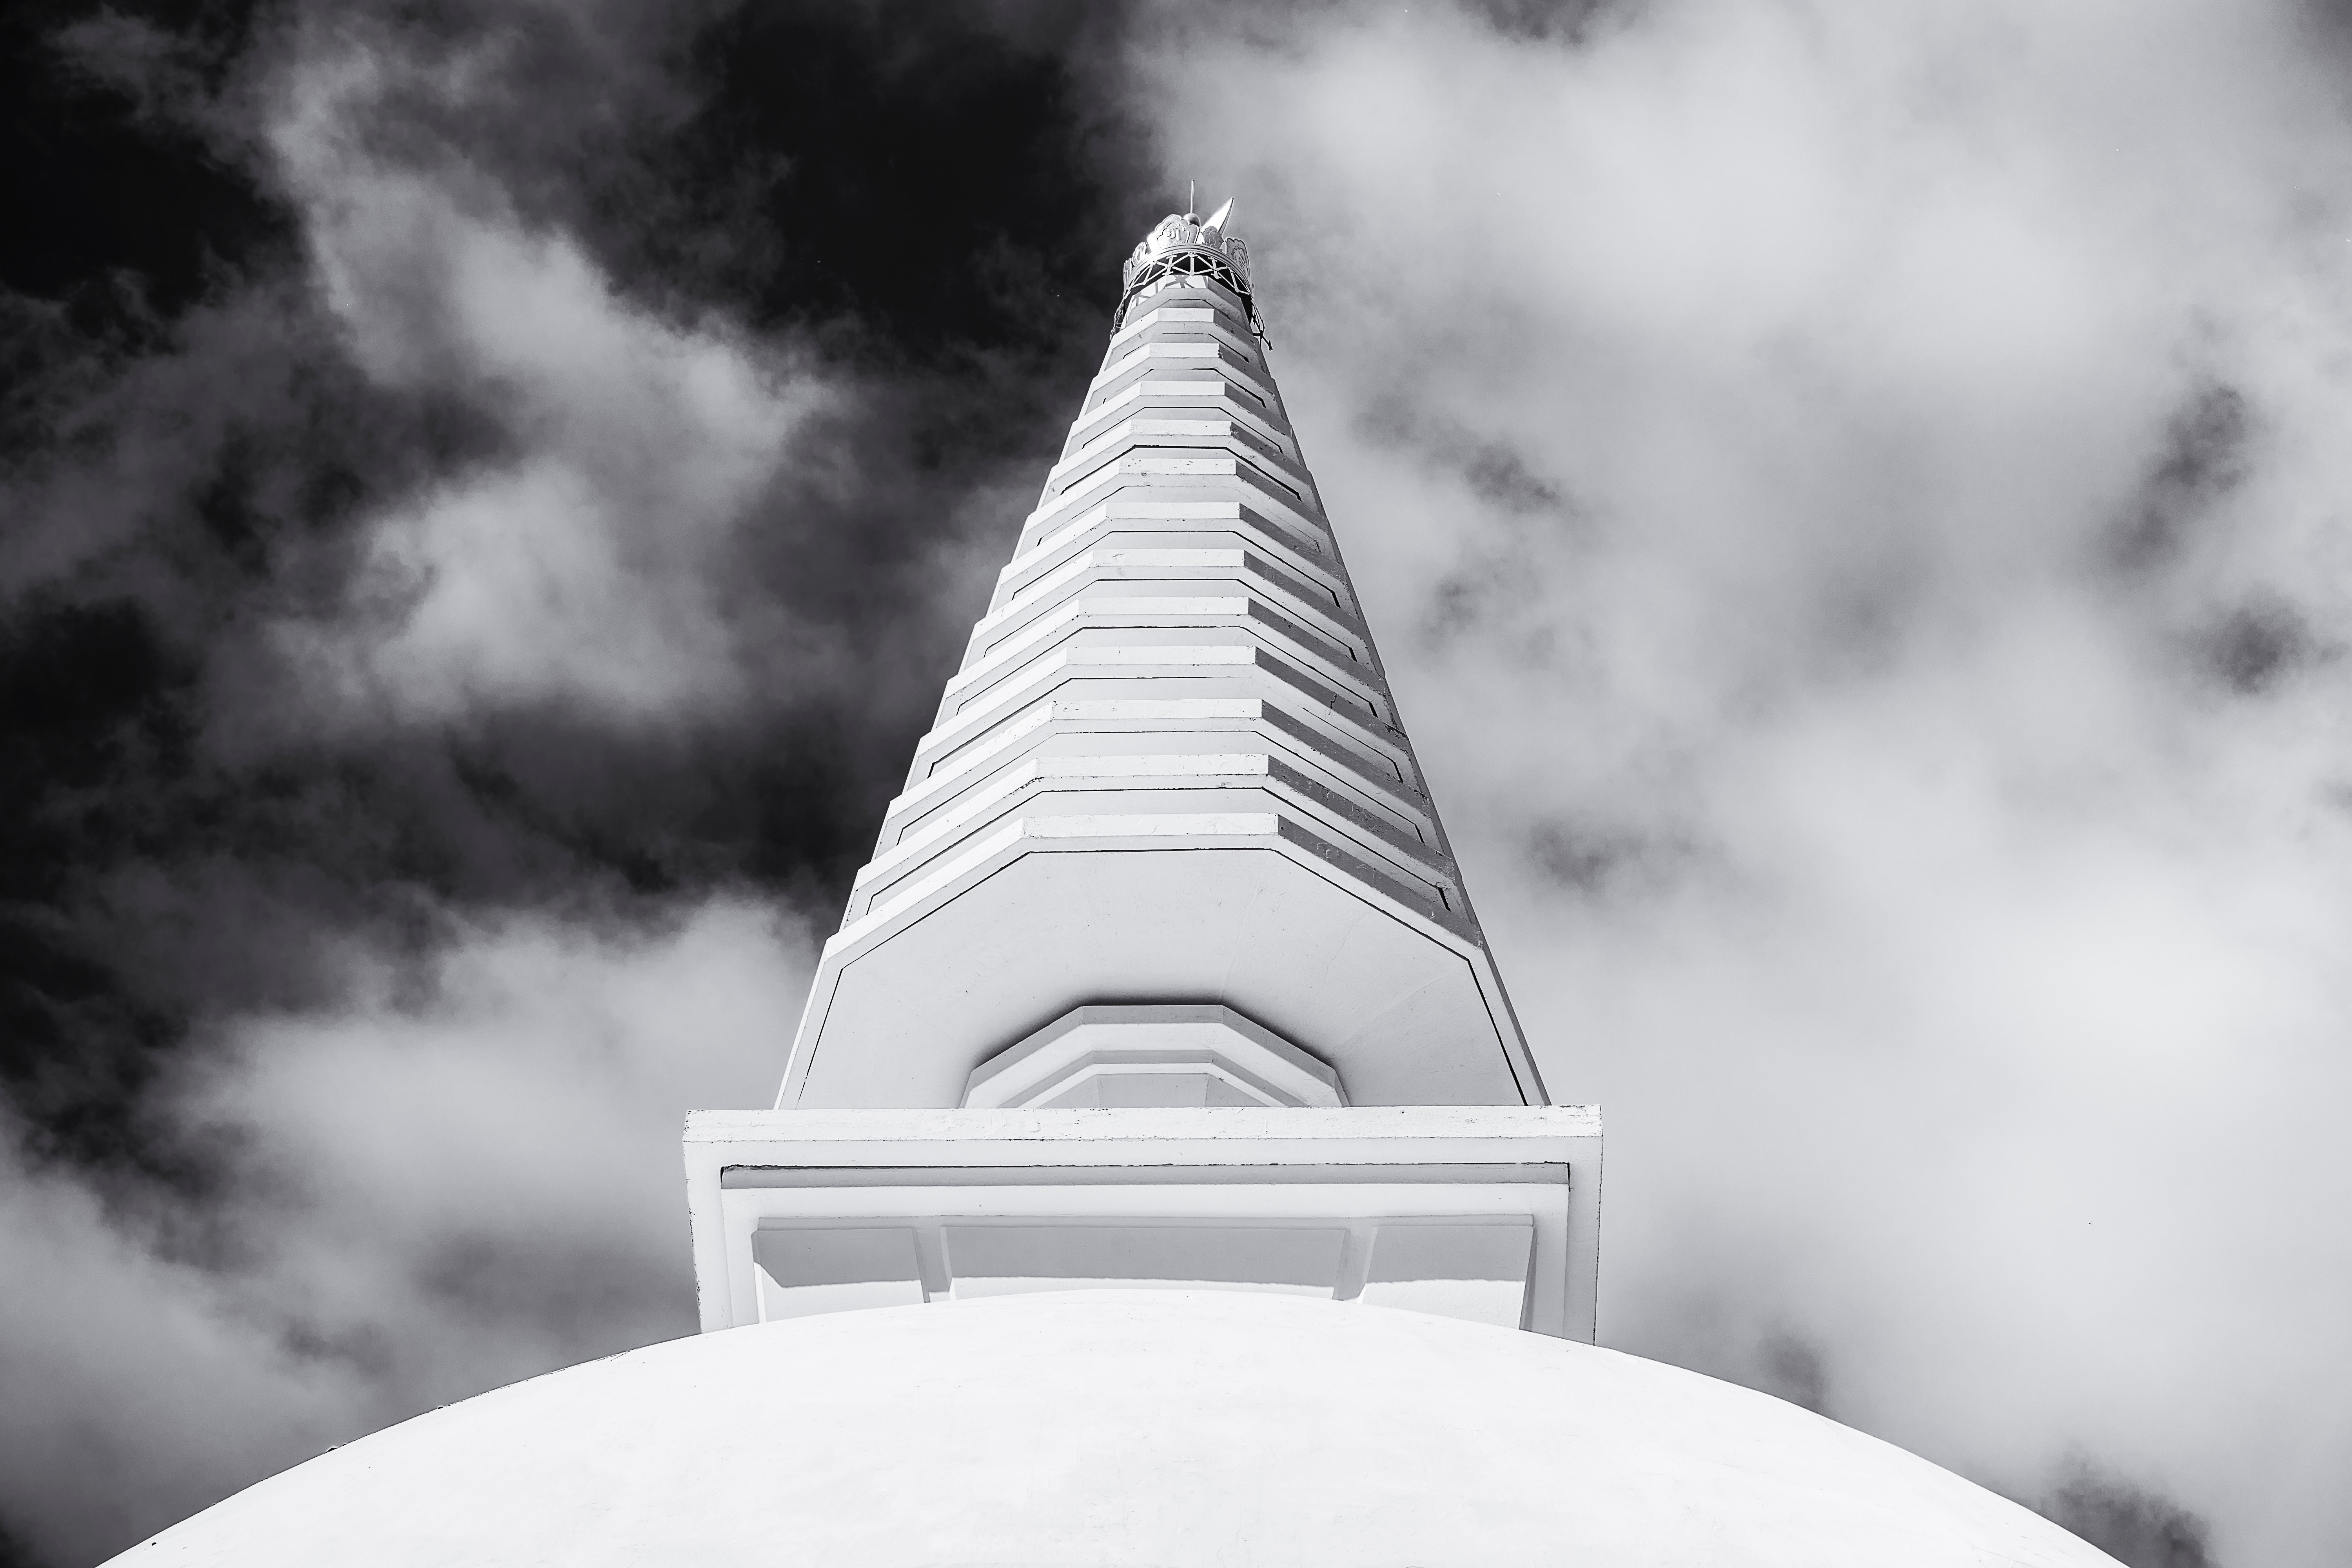 Grayscale Photo of Building, Architecture, Black and white, Building, Clouds, HQ Photo